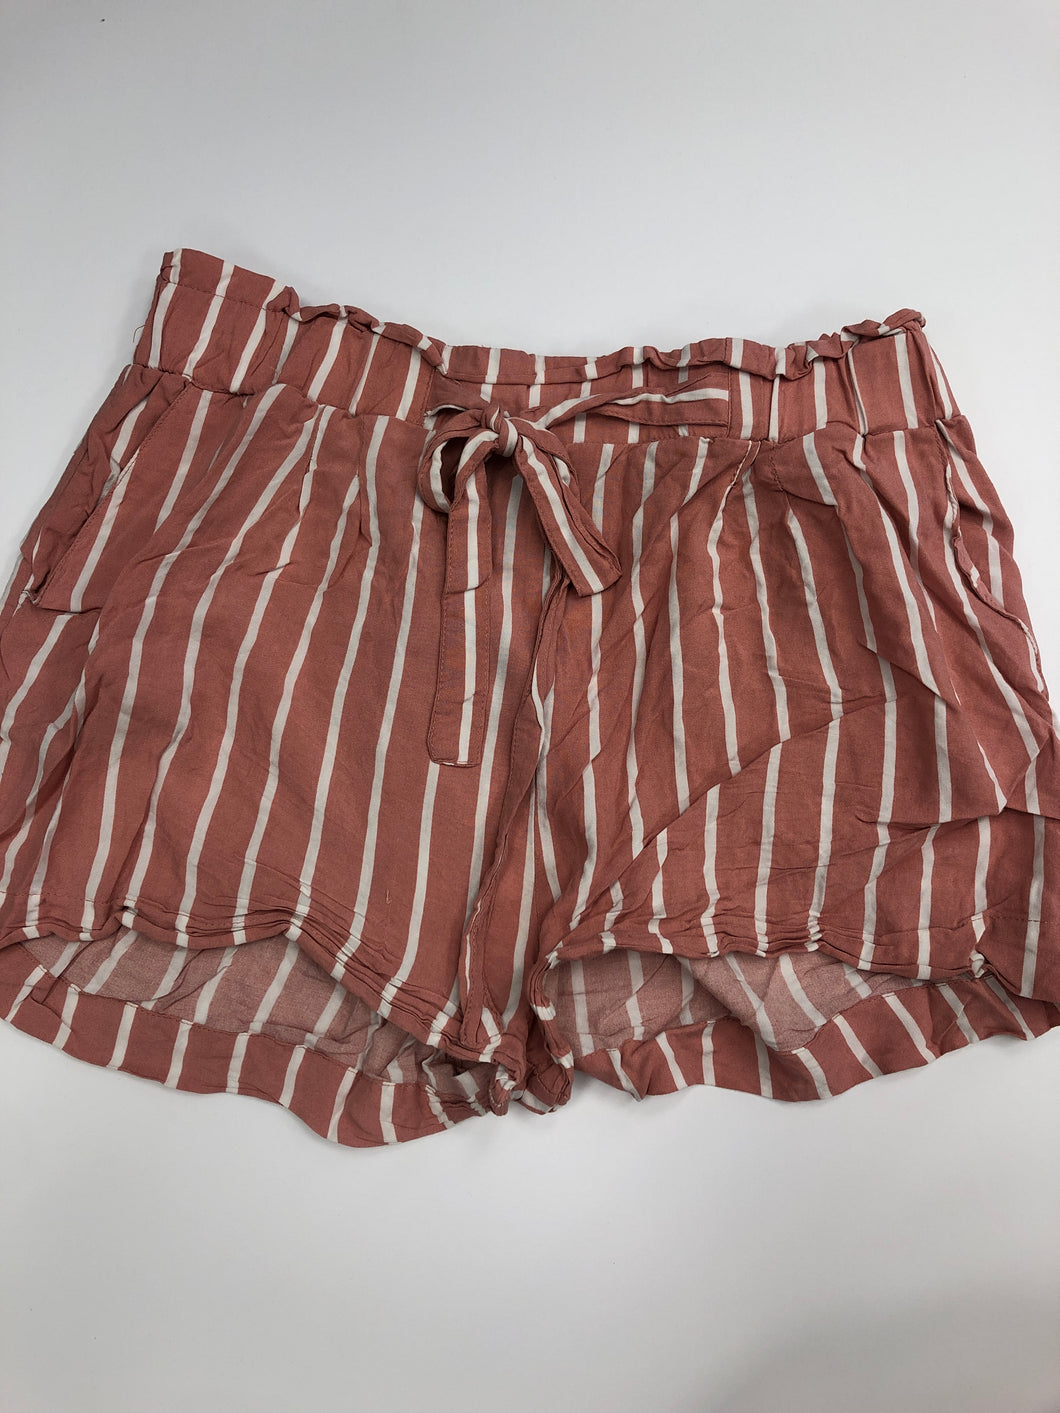 Ambiance Apparel Shorts Size Large